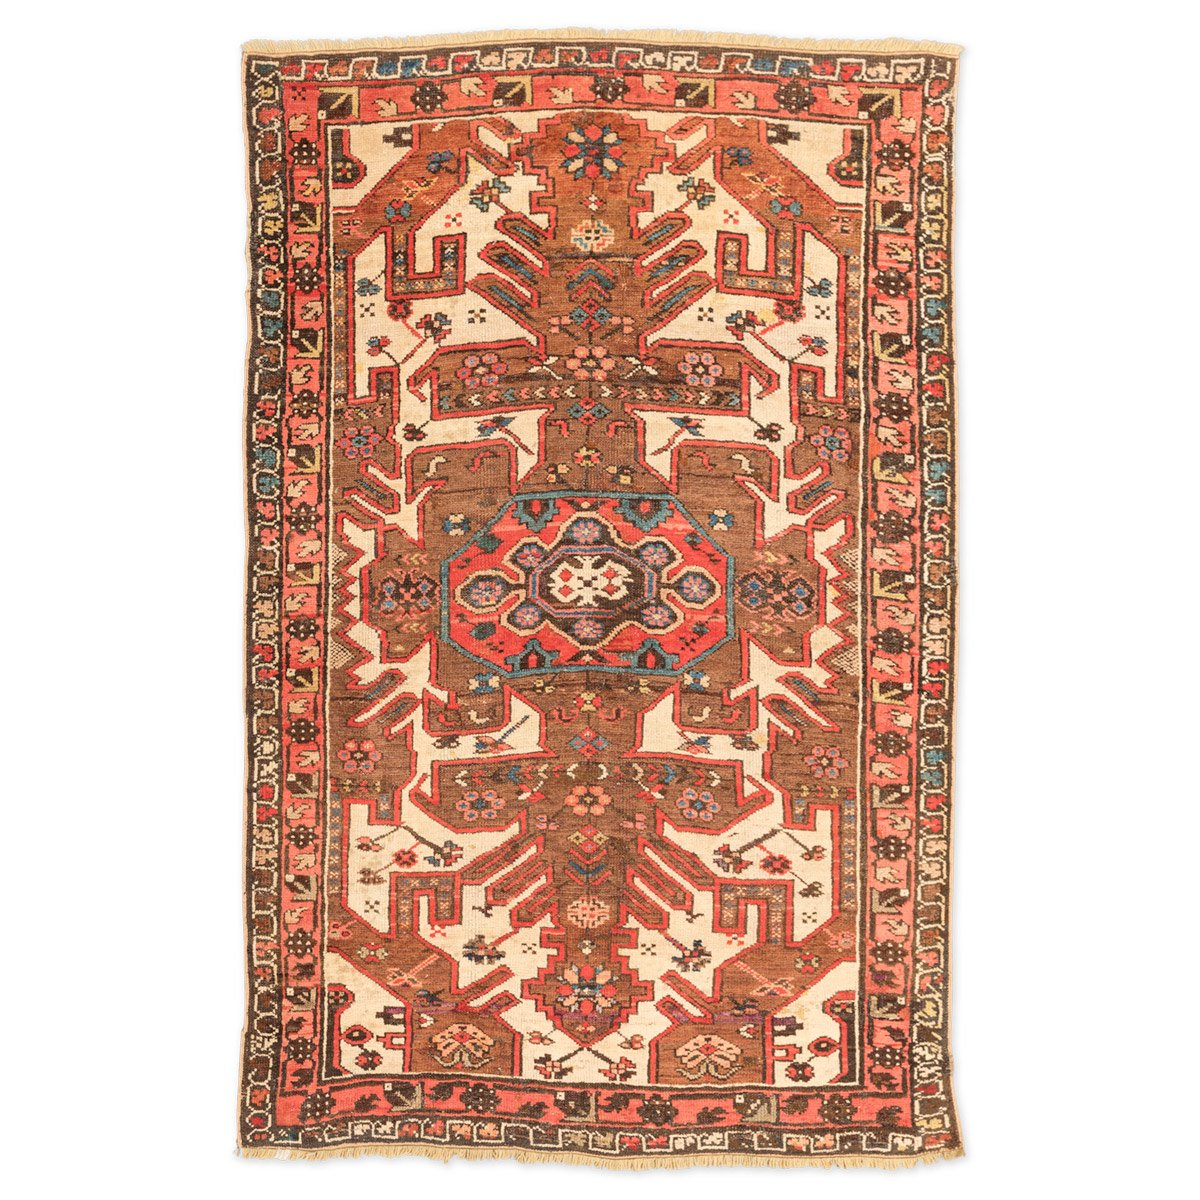 tapis kazakh caucasien antique avec motifs g om triques 1900s en vente sur pamono. Black Bedroom Furniture Sets. Home Design Ideas